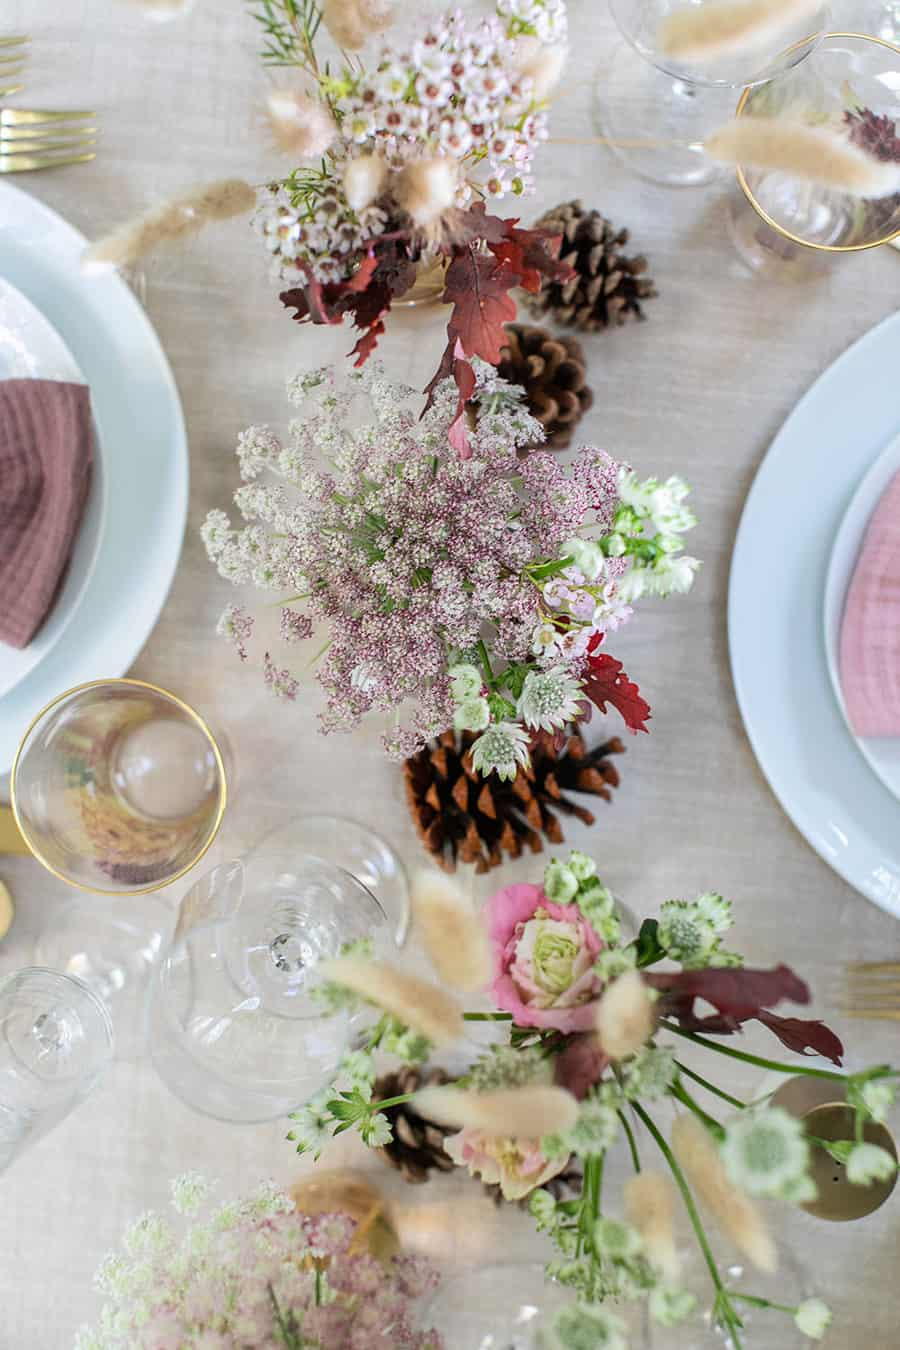 Thanksgiving table setting with flowers and pinecones